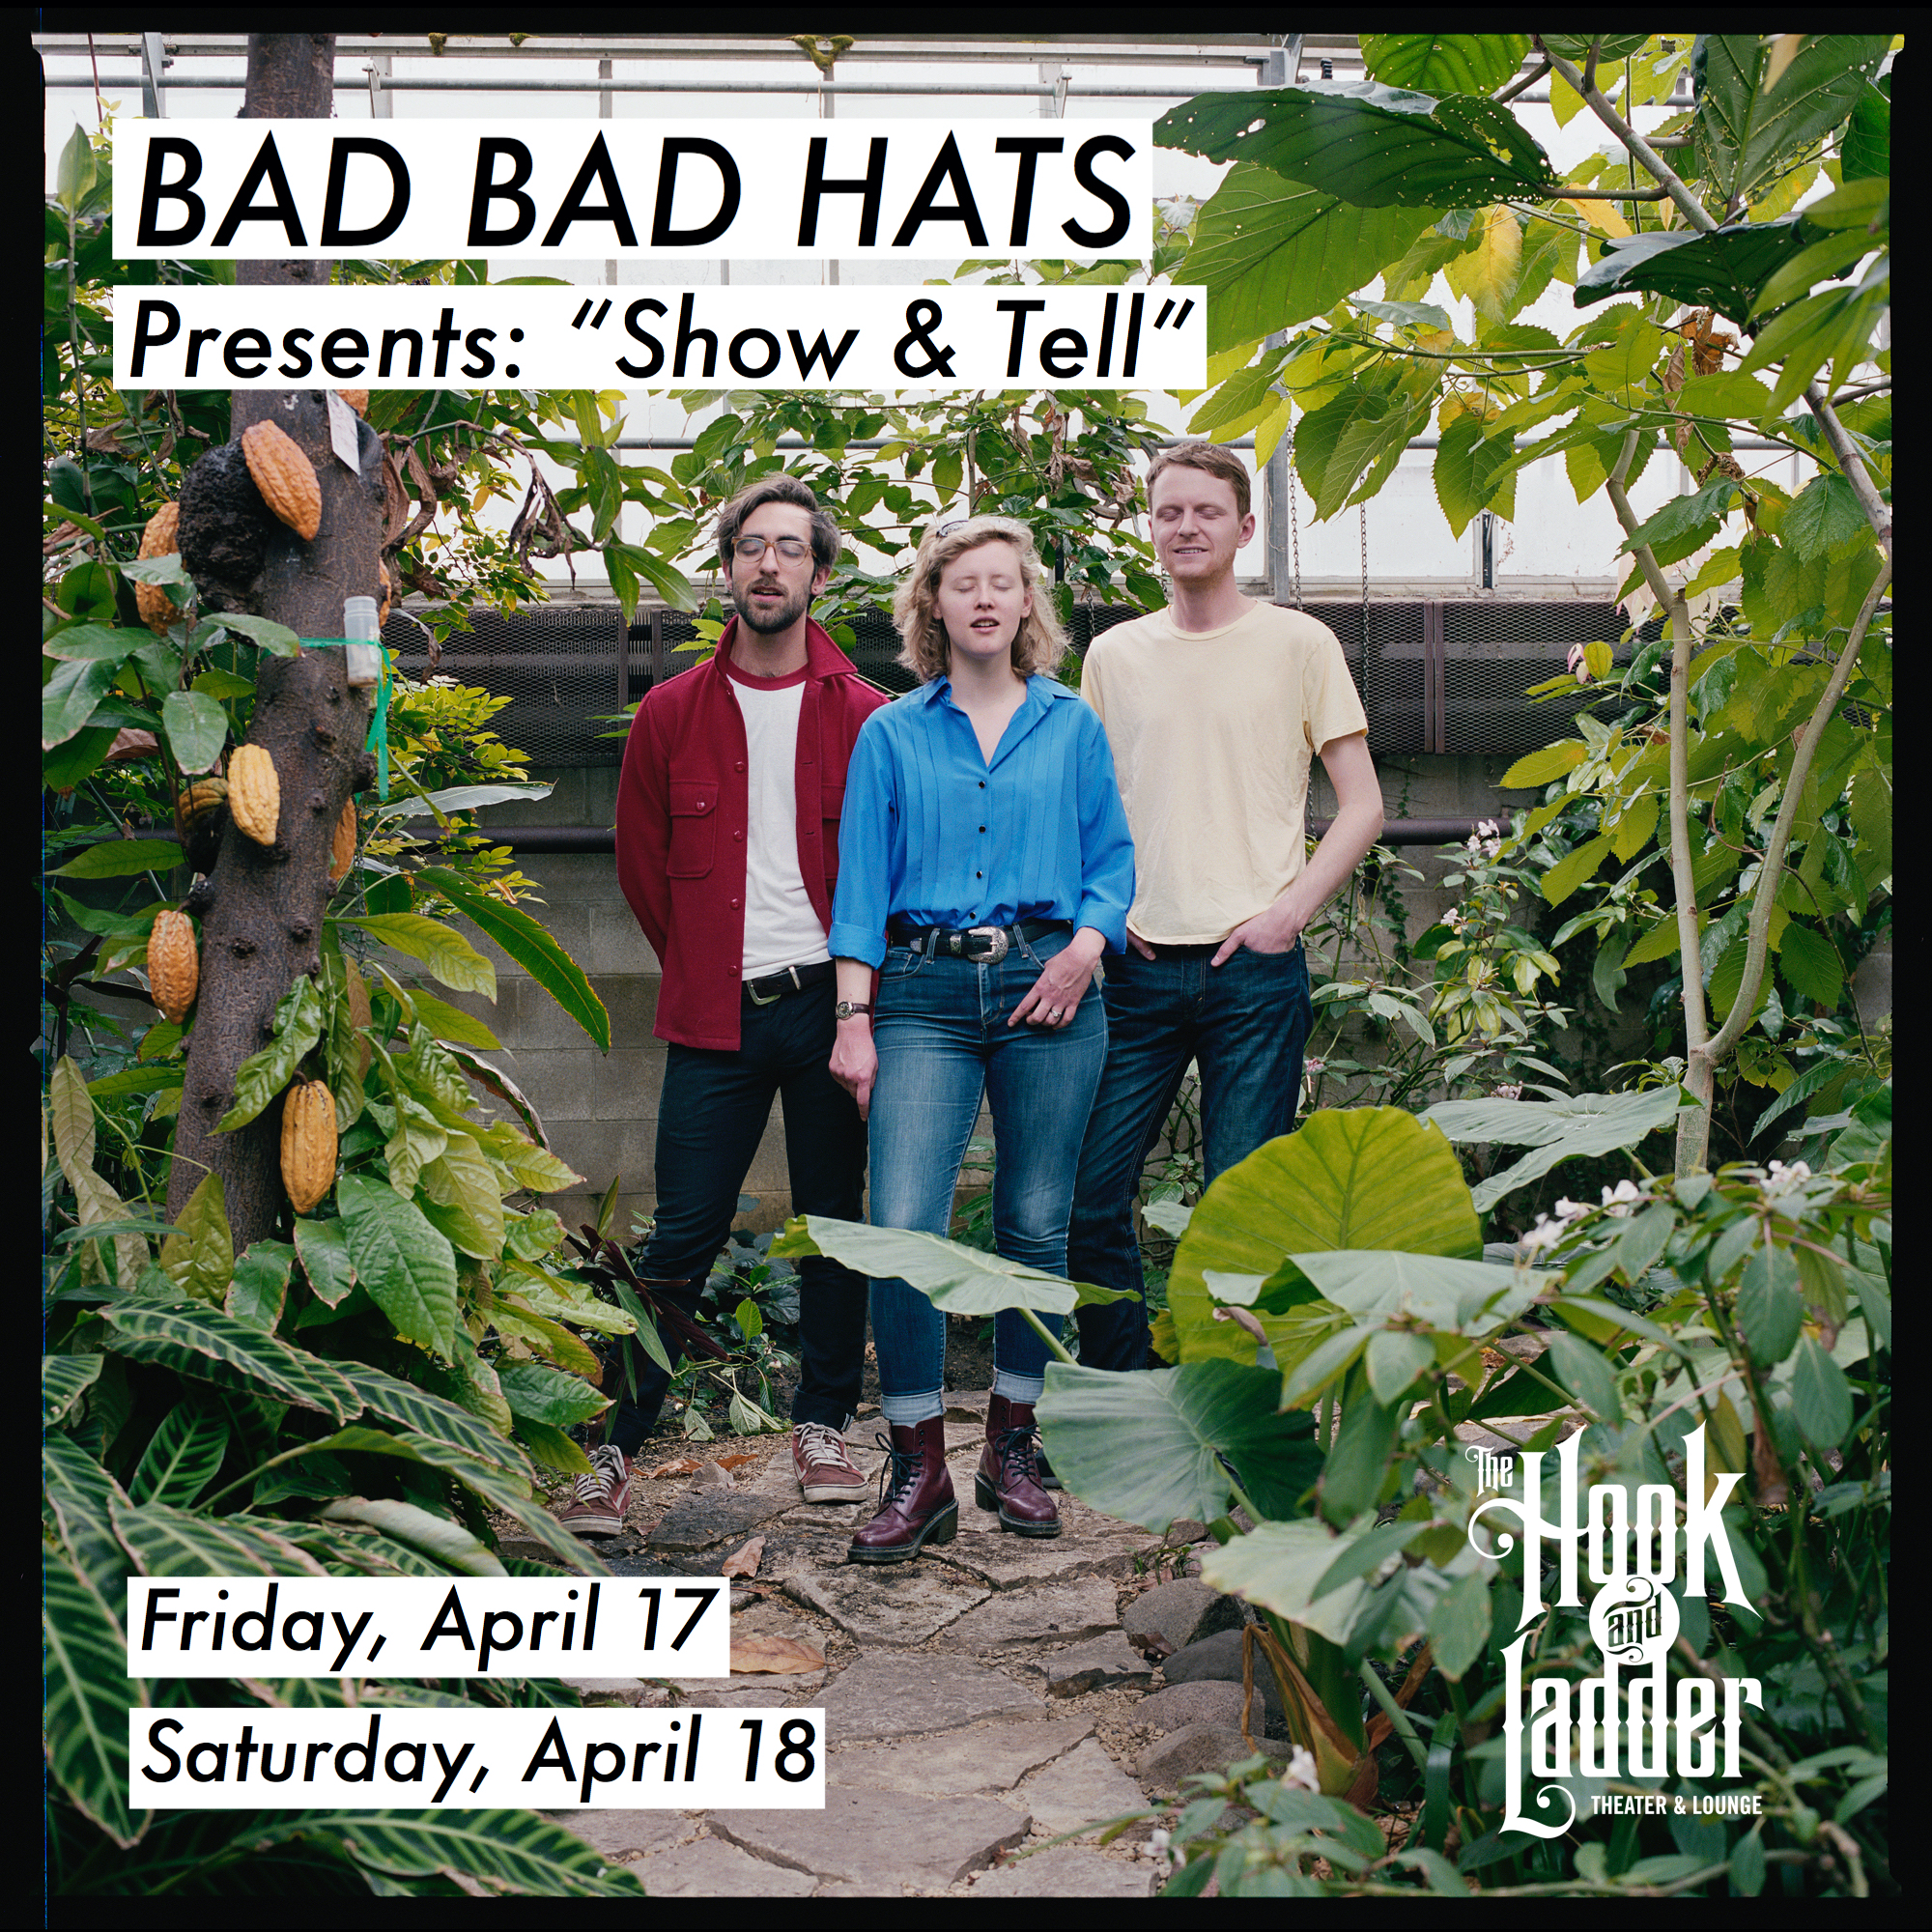 Bad Bad Hats presents: Show & Tell - Friday, April 17 - Saturday, April 18 - The Hook a